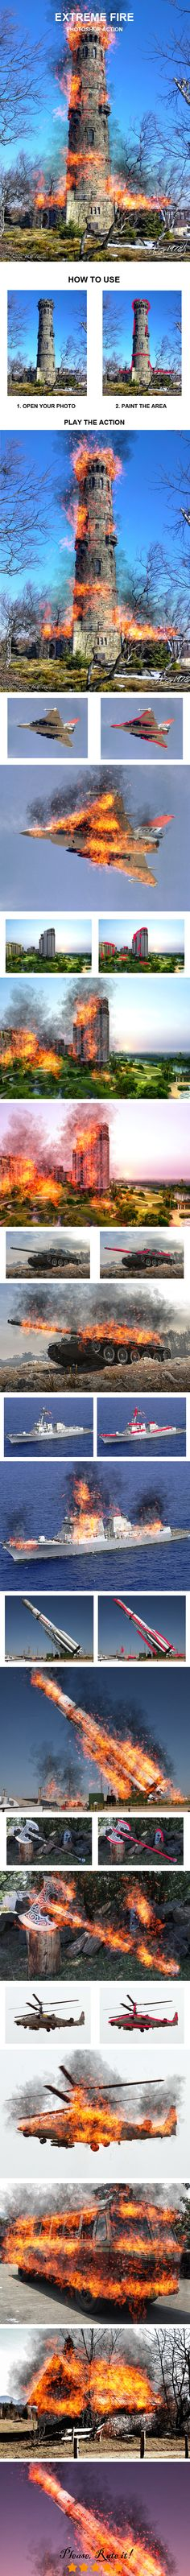 Extreme Fire Photoshop Action